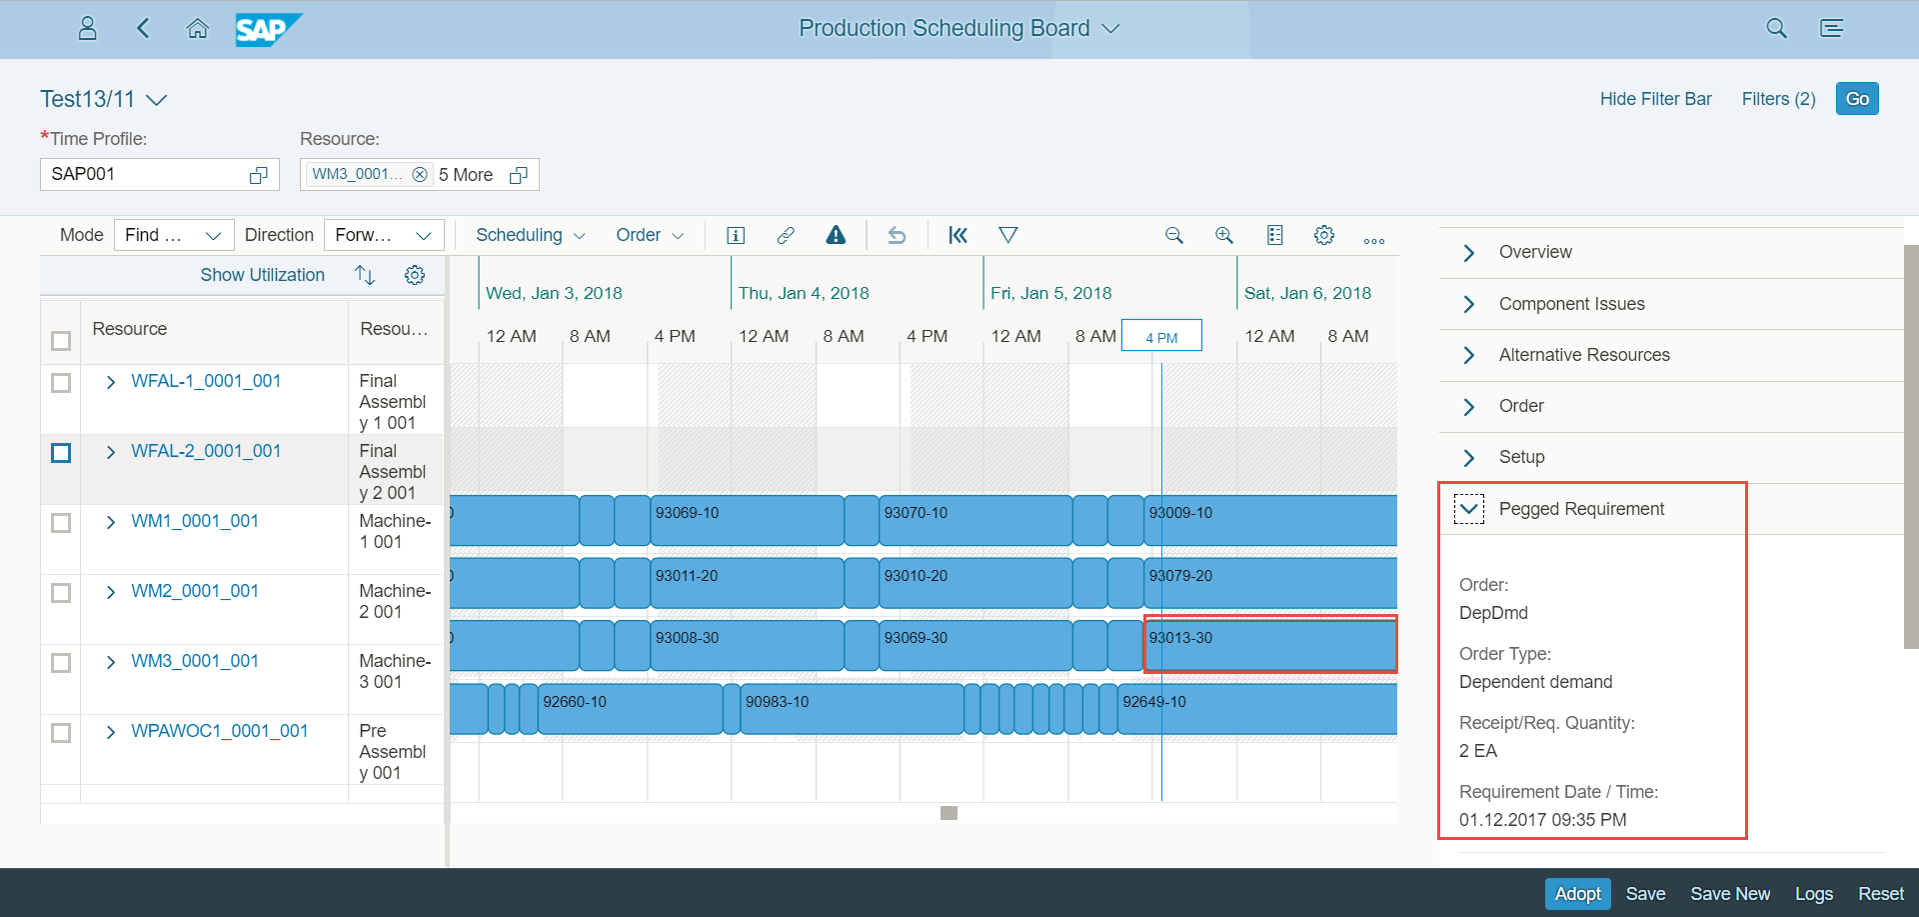 production scheduling board with pp  ds for sap s  4hana  advanced planning  on sap s  4hana 1709